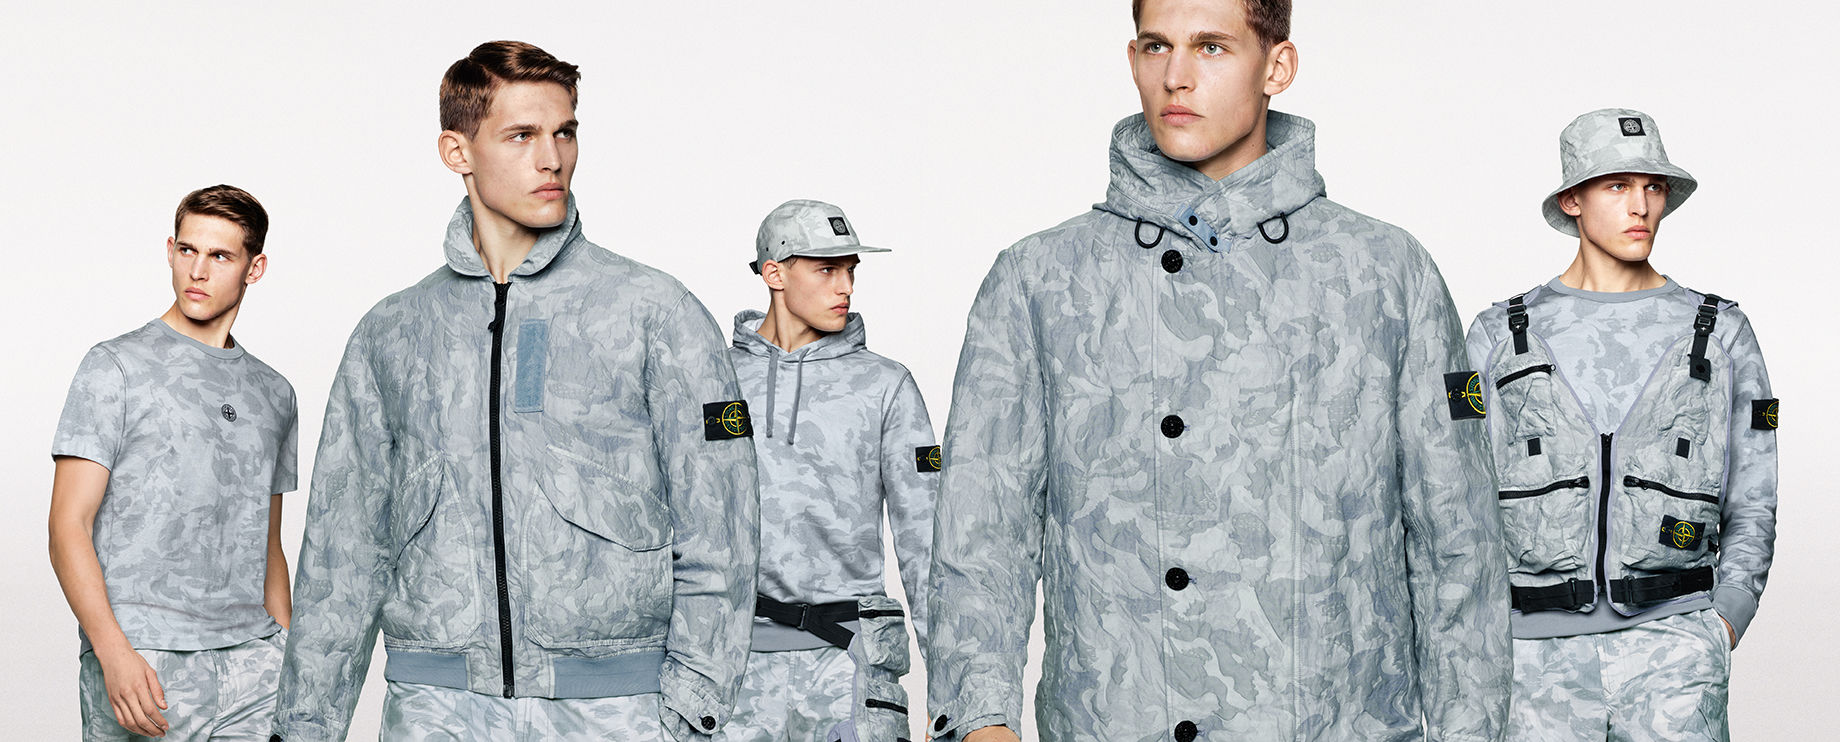 Five shots of the same model, showing the front and side view of him wearing different styles of sweatshirts, pants, jackets, hats, t shirt and vest, all in the same gray camouflage print.